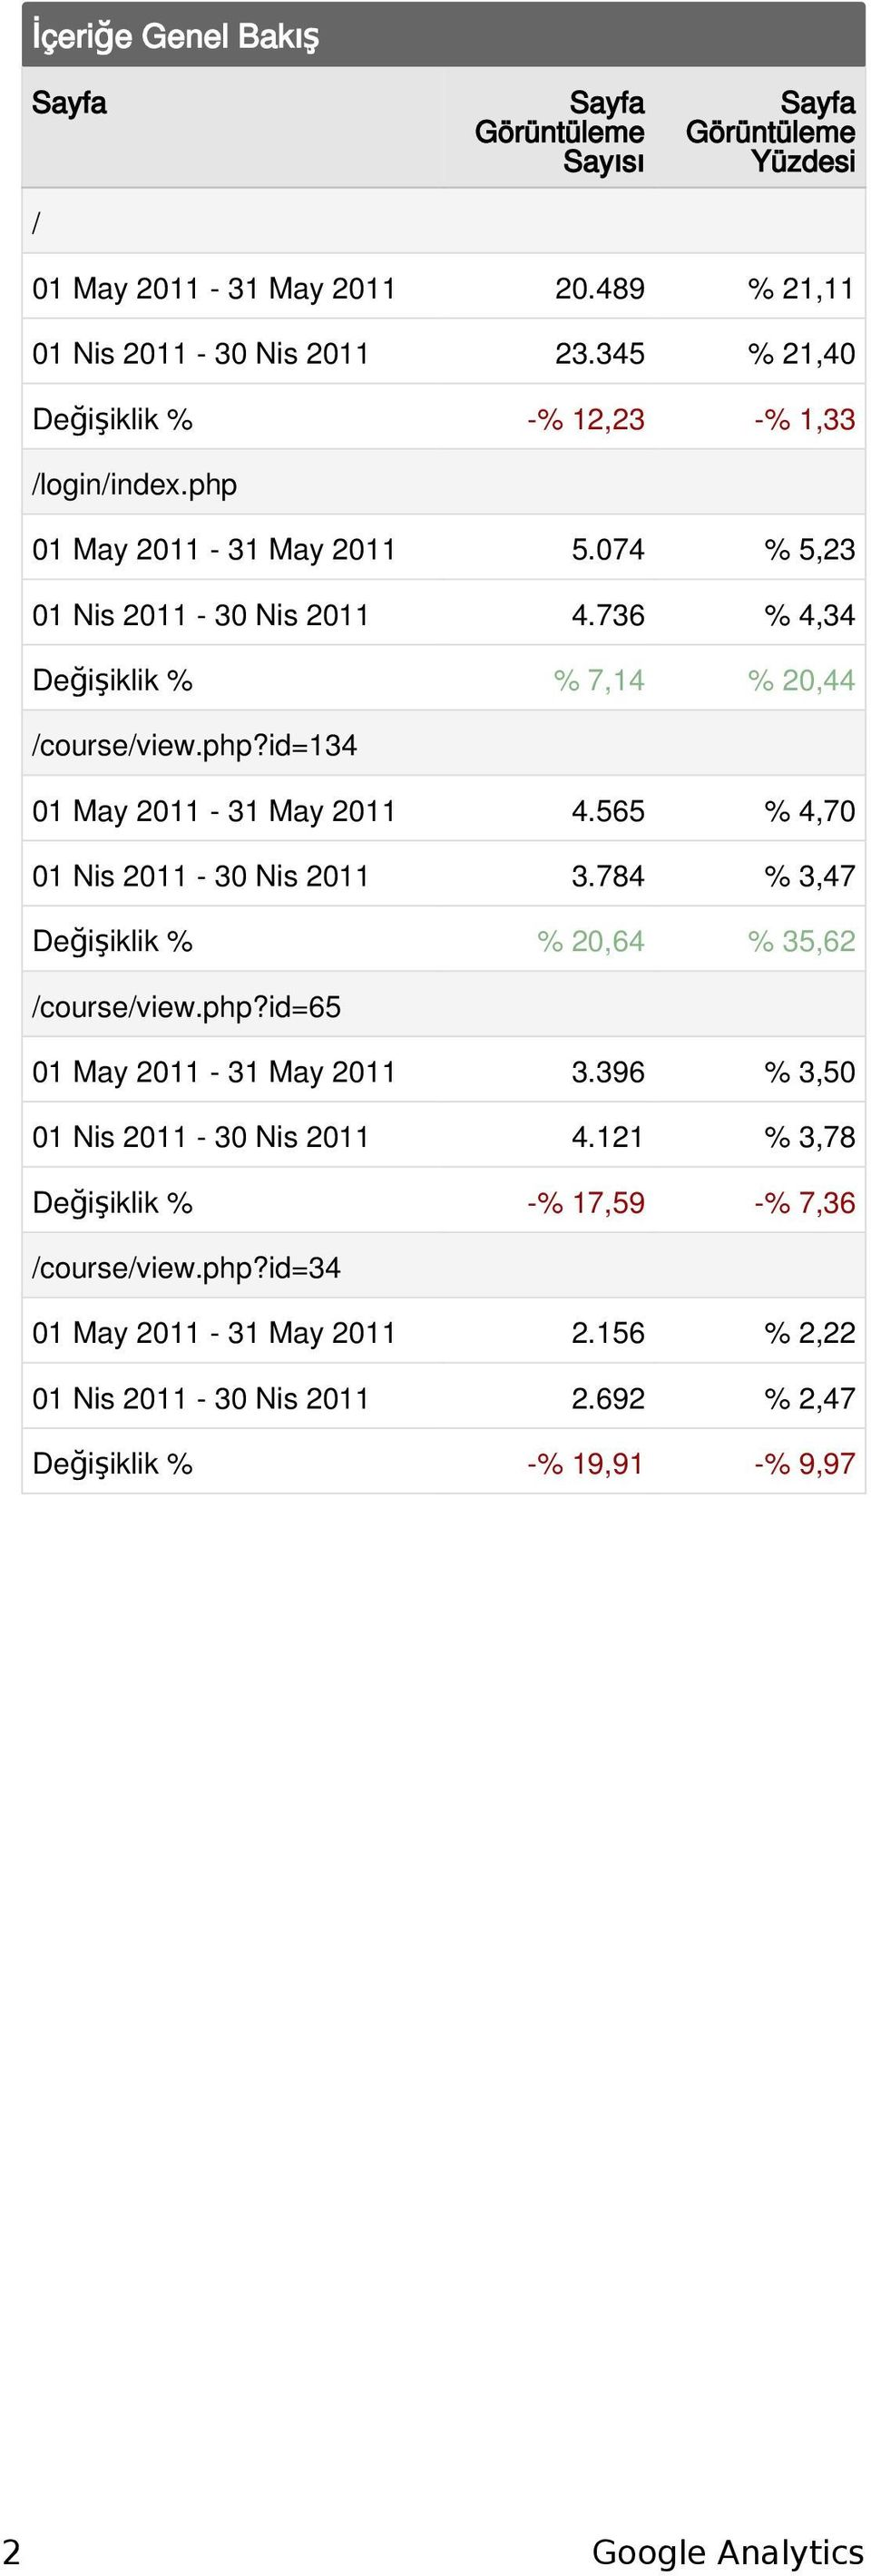 php?id=134 1 May 211-31 May 211 4.565 % 4,7 1 Nis 211-3 Nis 211 3.784 % 3,47 Değişiklik % % 2,64 % 35,62 /course/view.php?id=65 1 May 211-31 May 211 3.